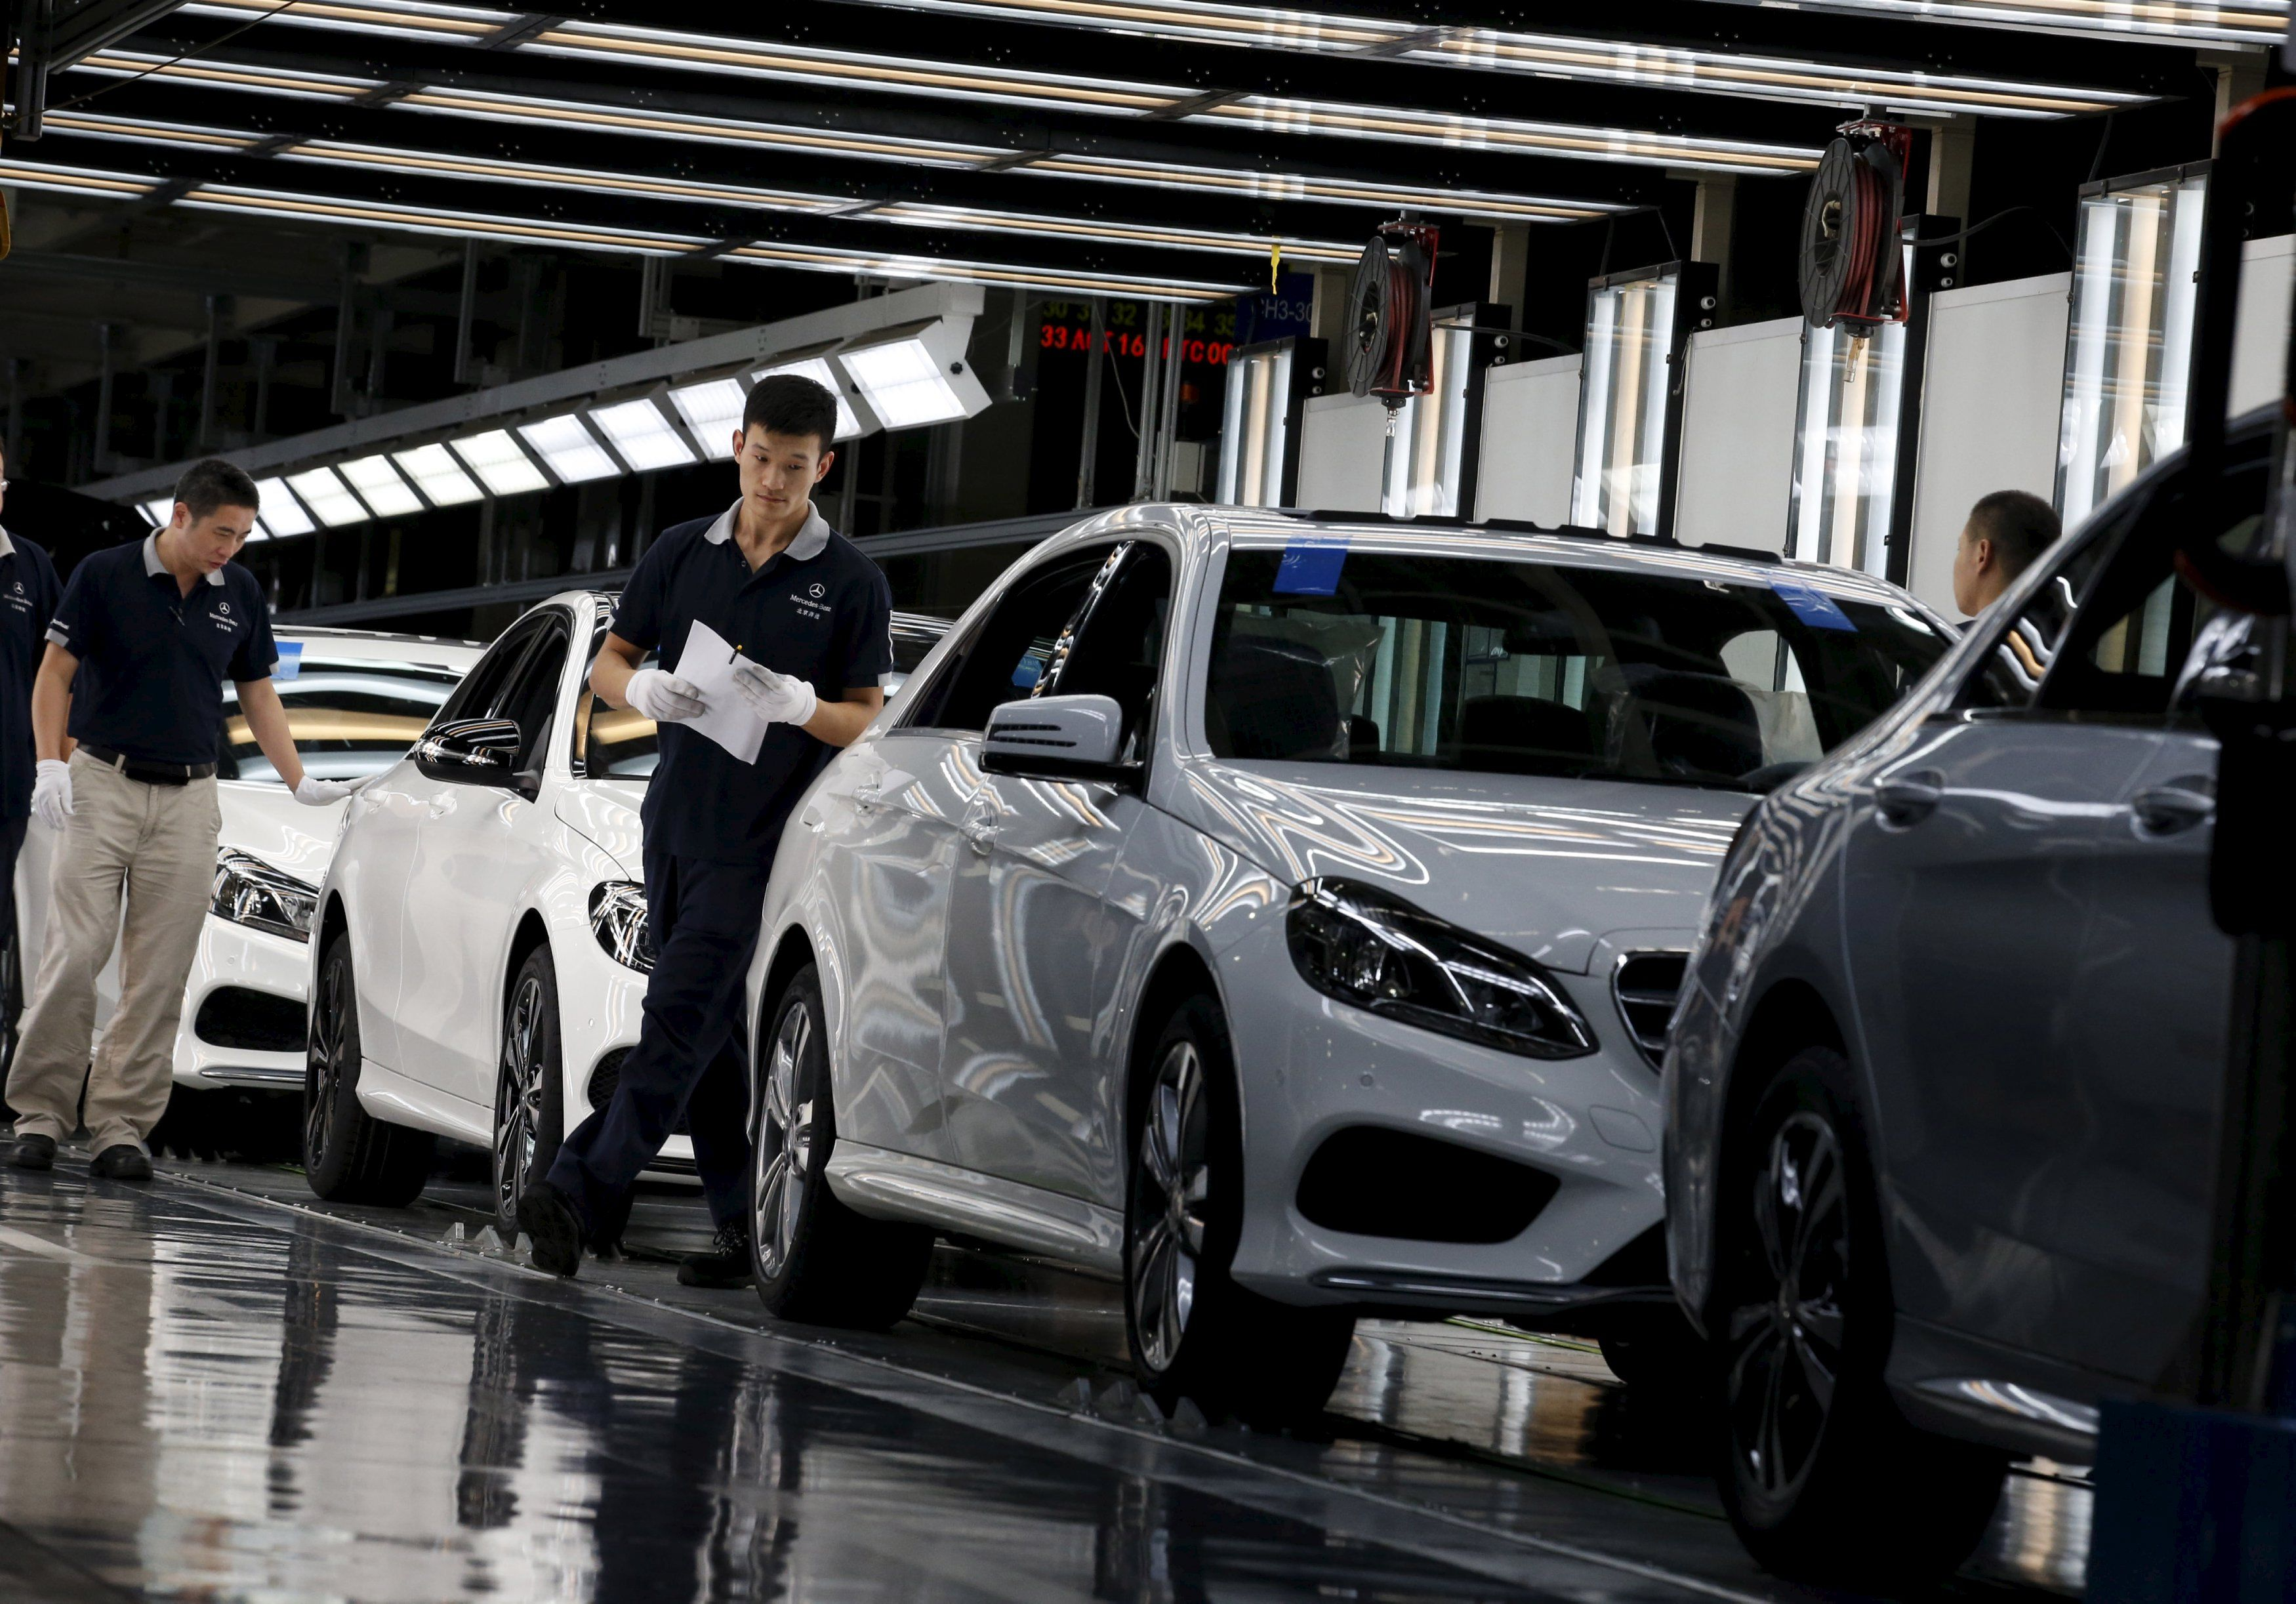 Mercedes Beats Audi To Take Second Place In Luxurycar Sales - Audi luxury car